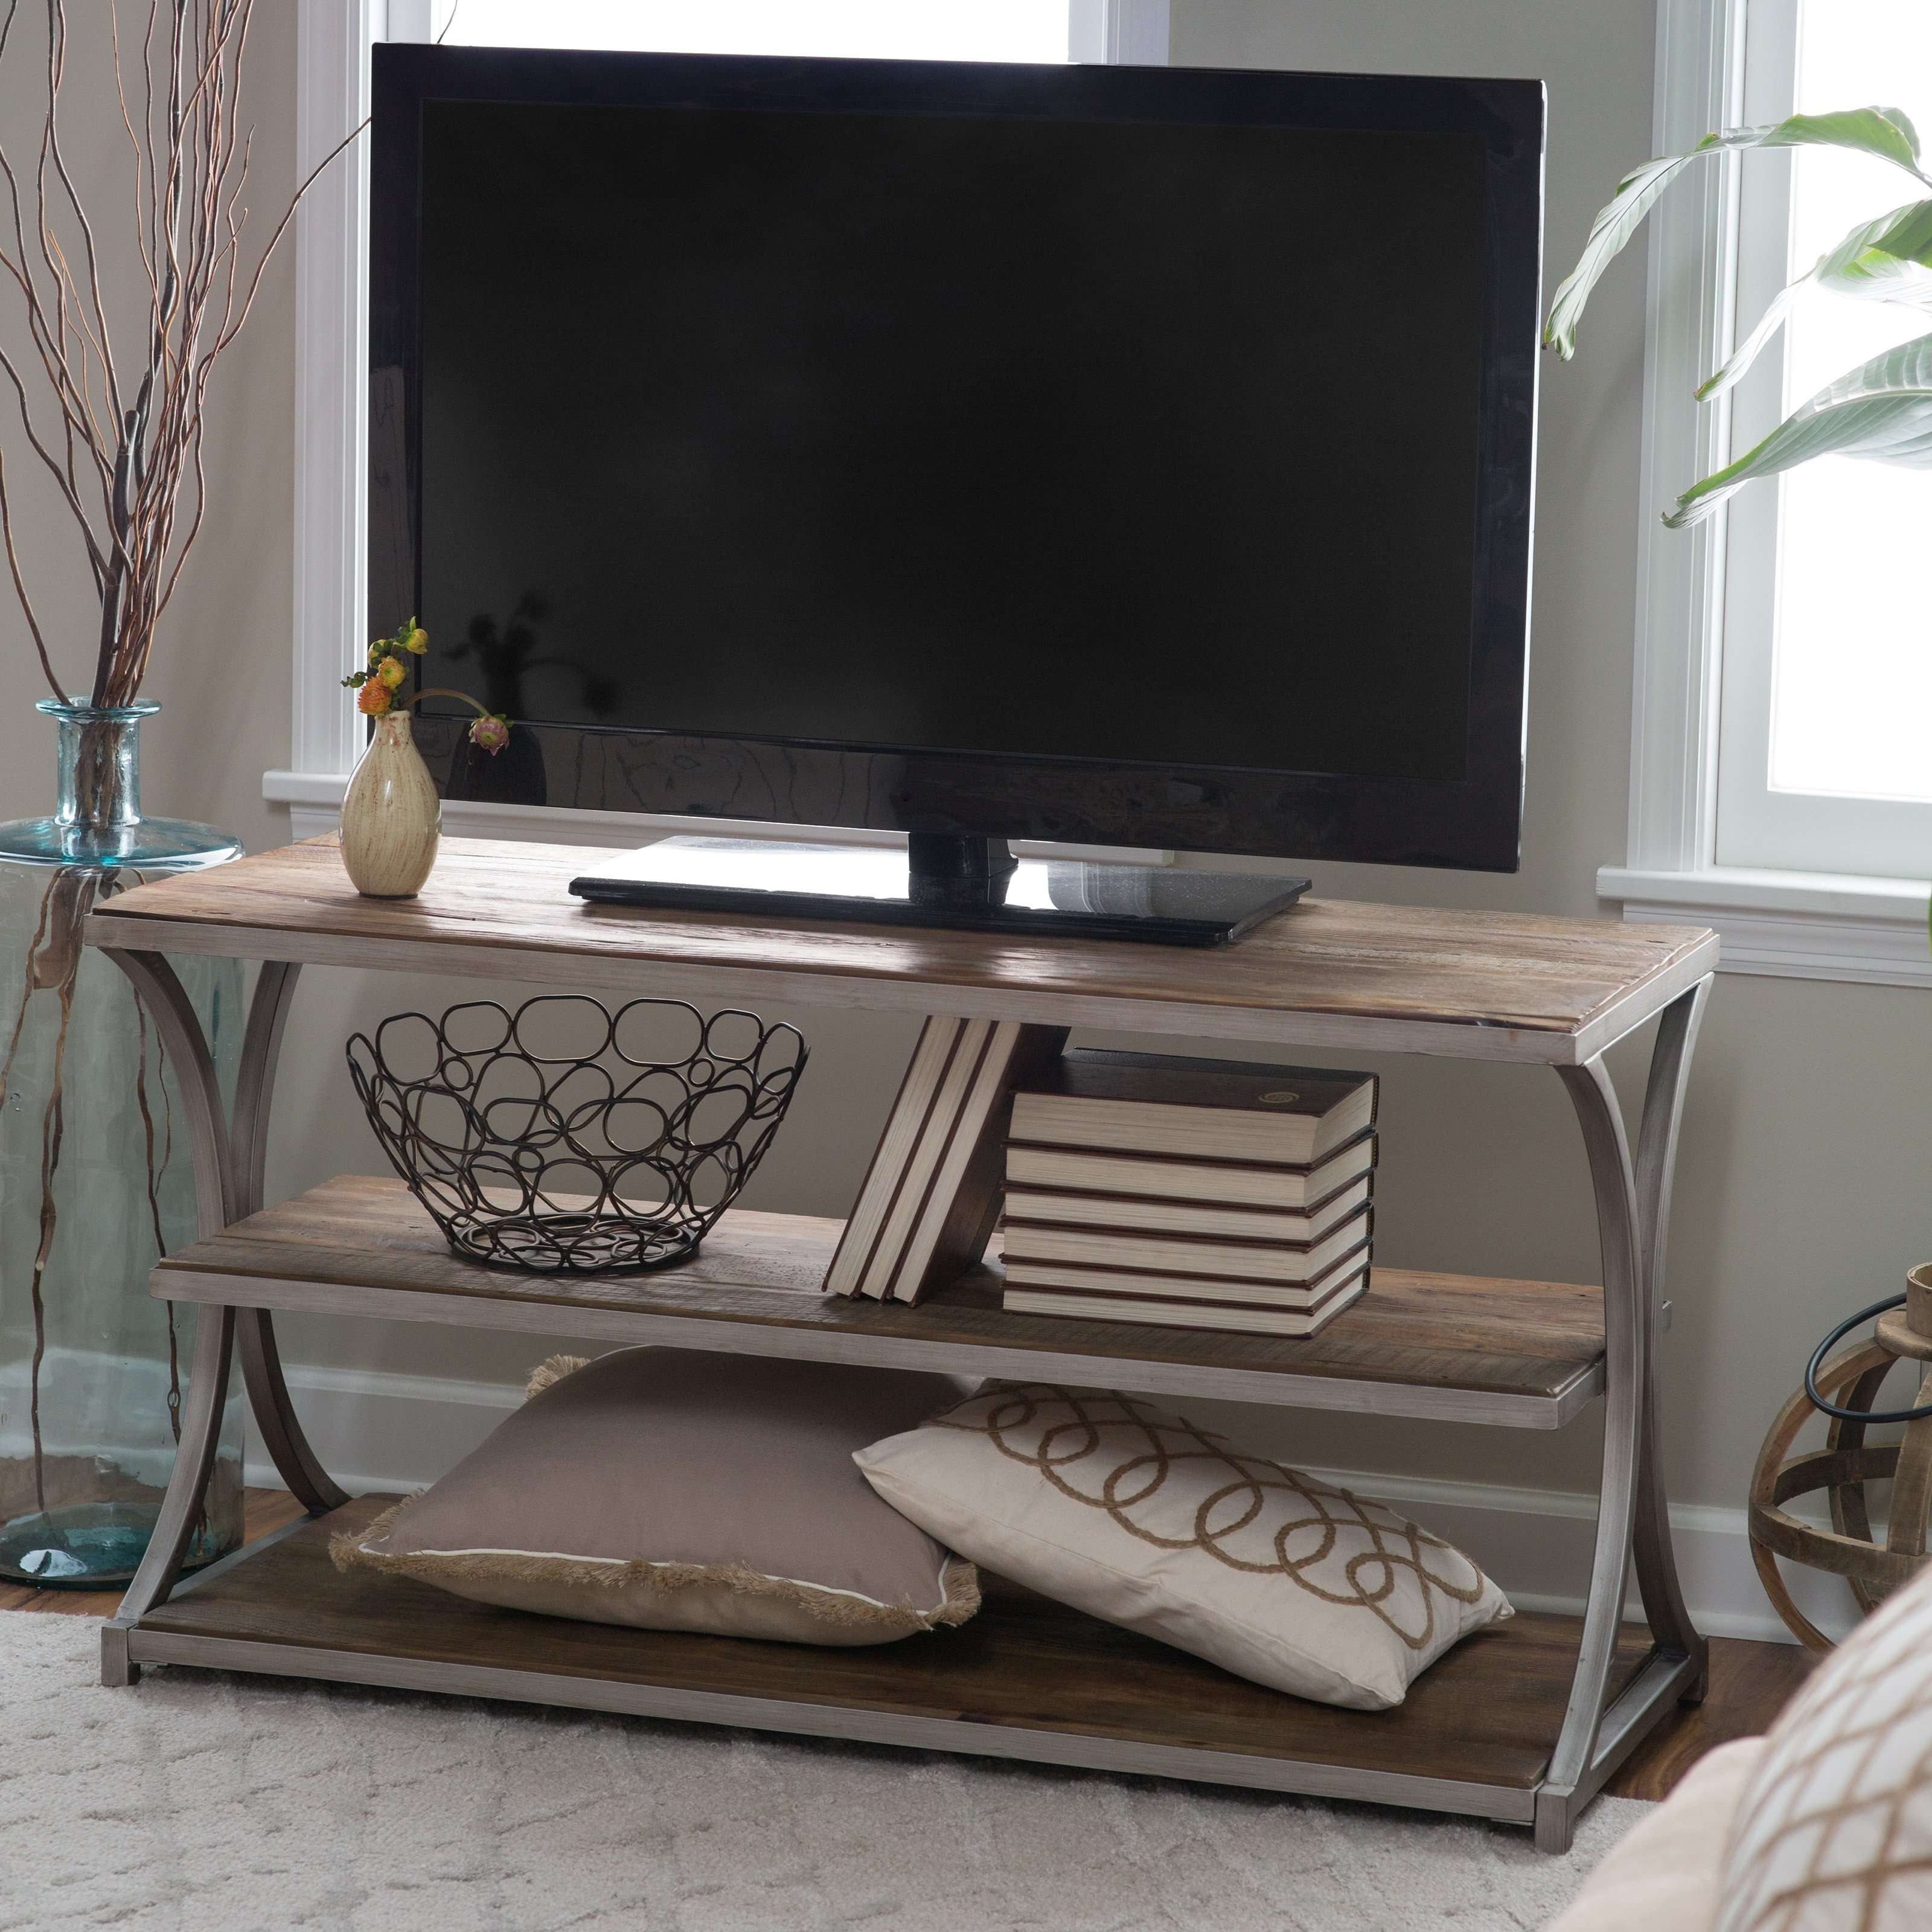 Belham Living Edison Reclaimed Wood Tv Stand | Hayneedle In Metal And Wood Tv Stands (View 11 of 15)